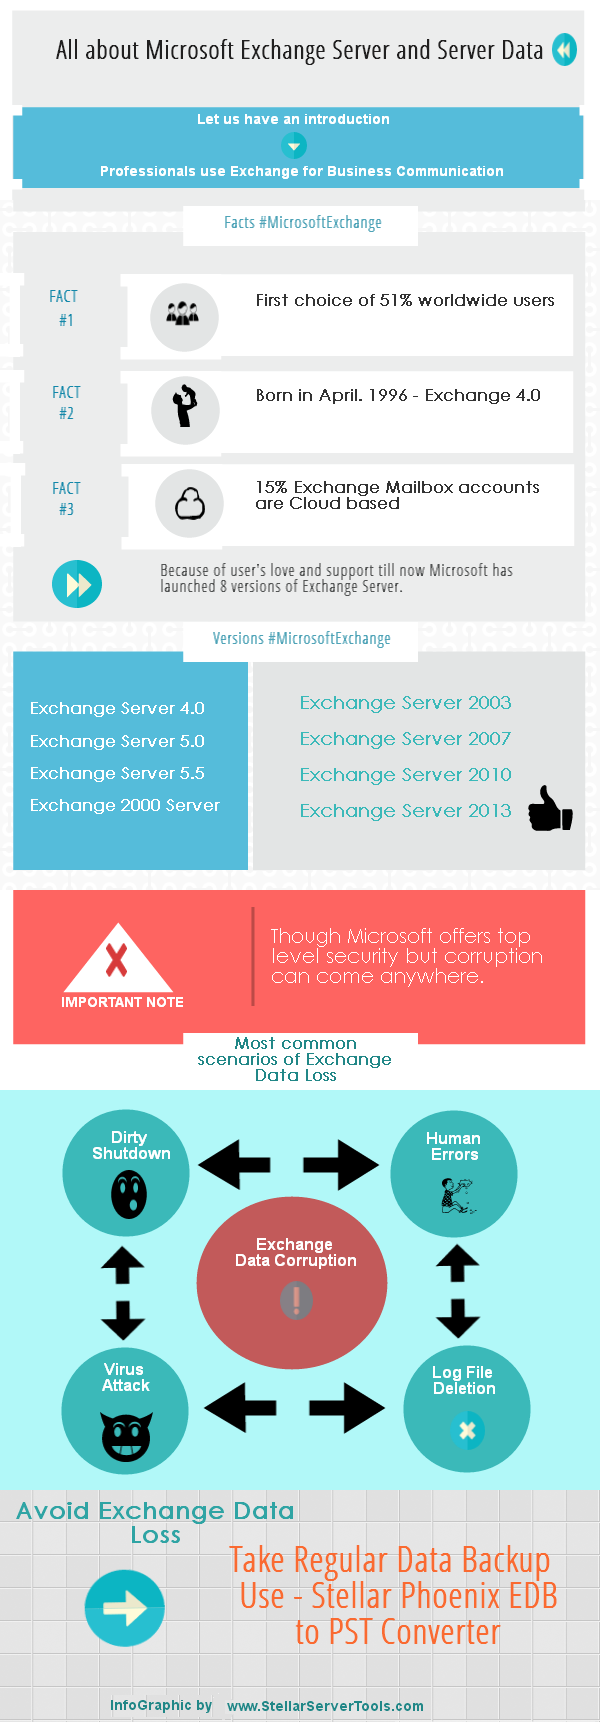 Infographic All about Microsoft Exchange Server History and its Versions